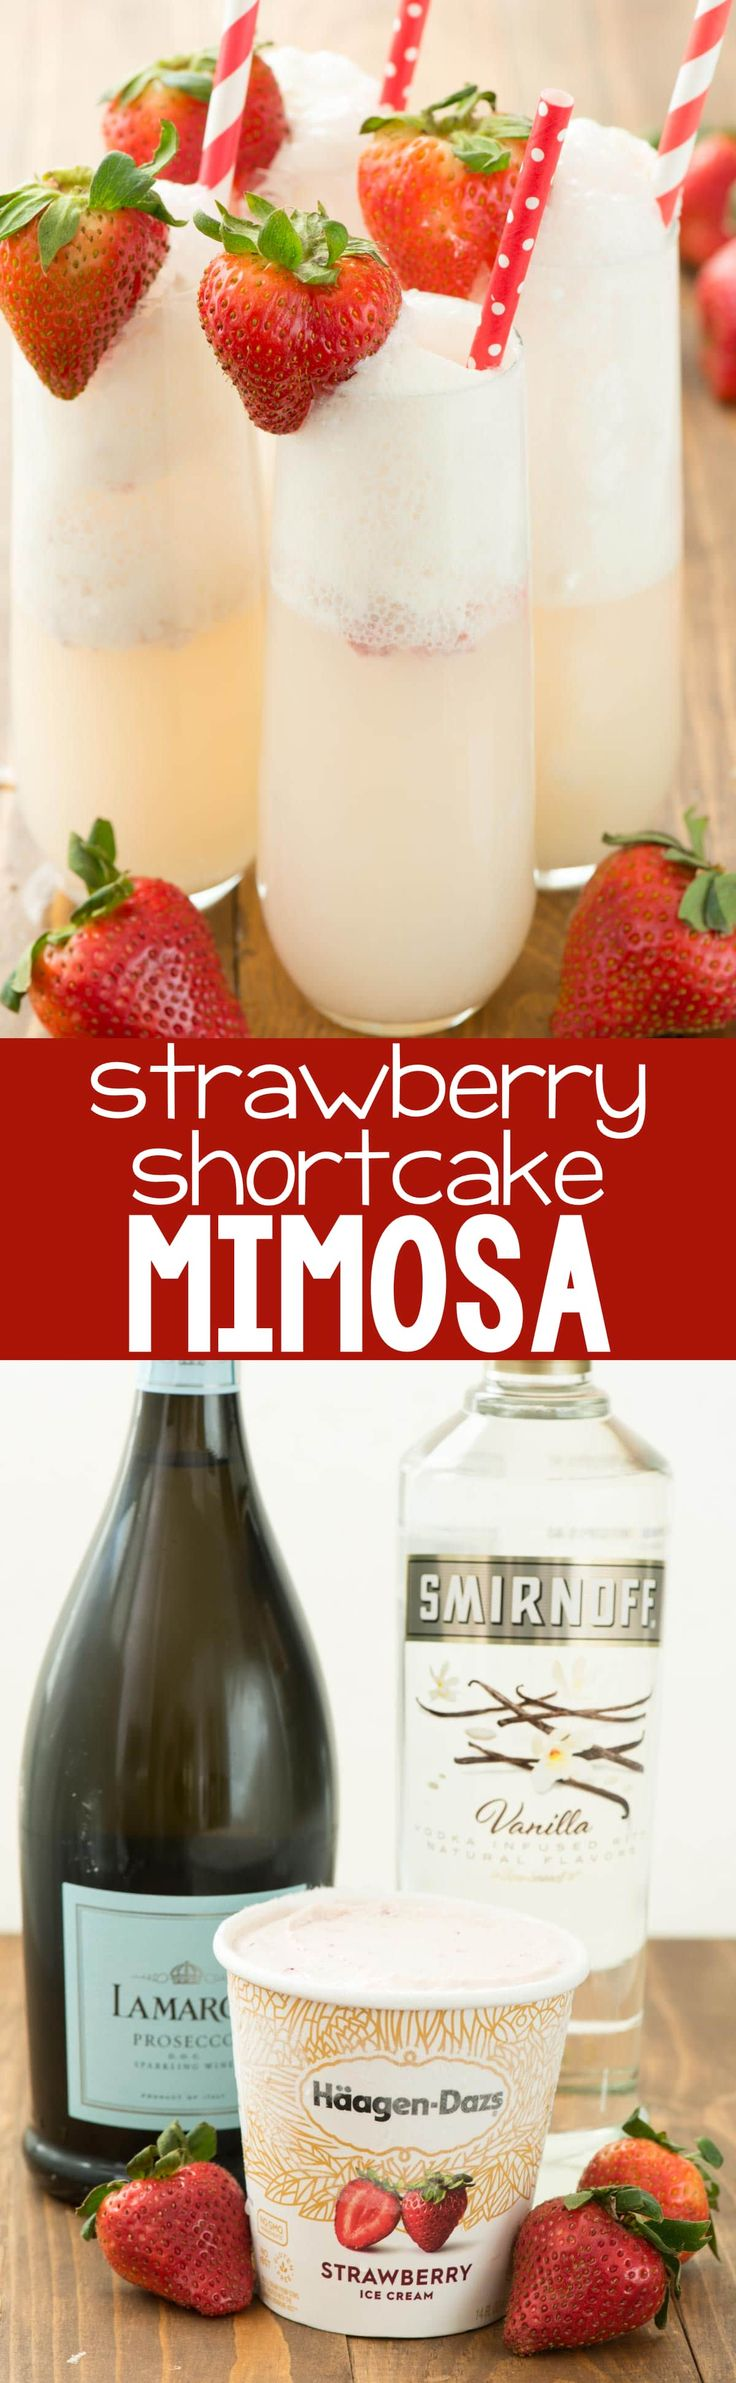 Strawberry Shortcake Mimosa - just three ingredients to the prettiest mimosa recipe ever! This champagne cocktail is perfect for brunch and can be made as a single cocktail or as a punch!